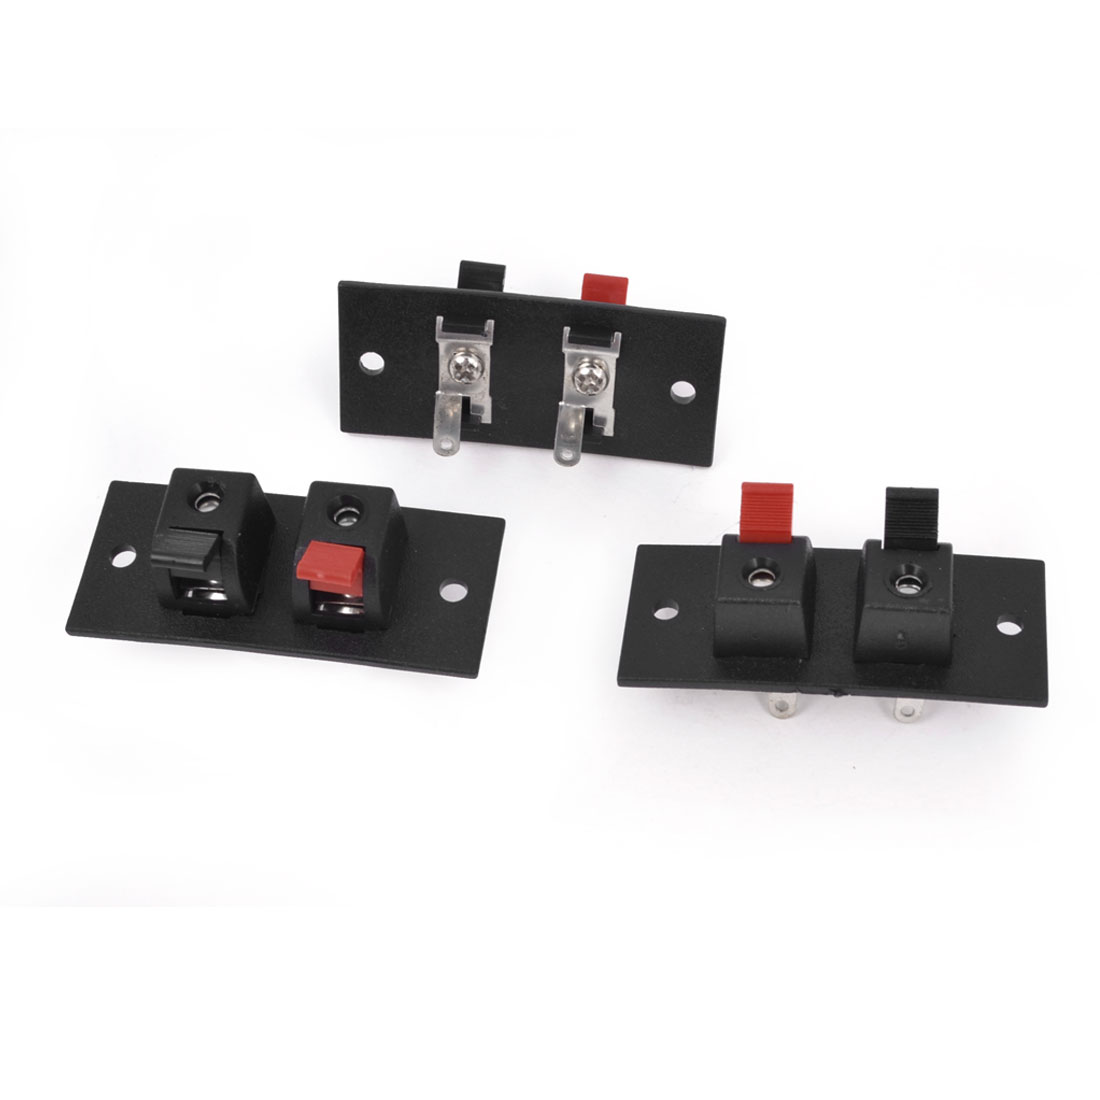 3 Pcs 2 Position 55 x 24mm Push Type Plastic Housing Speaker Terminal Board Connector